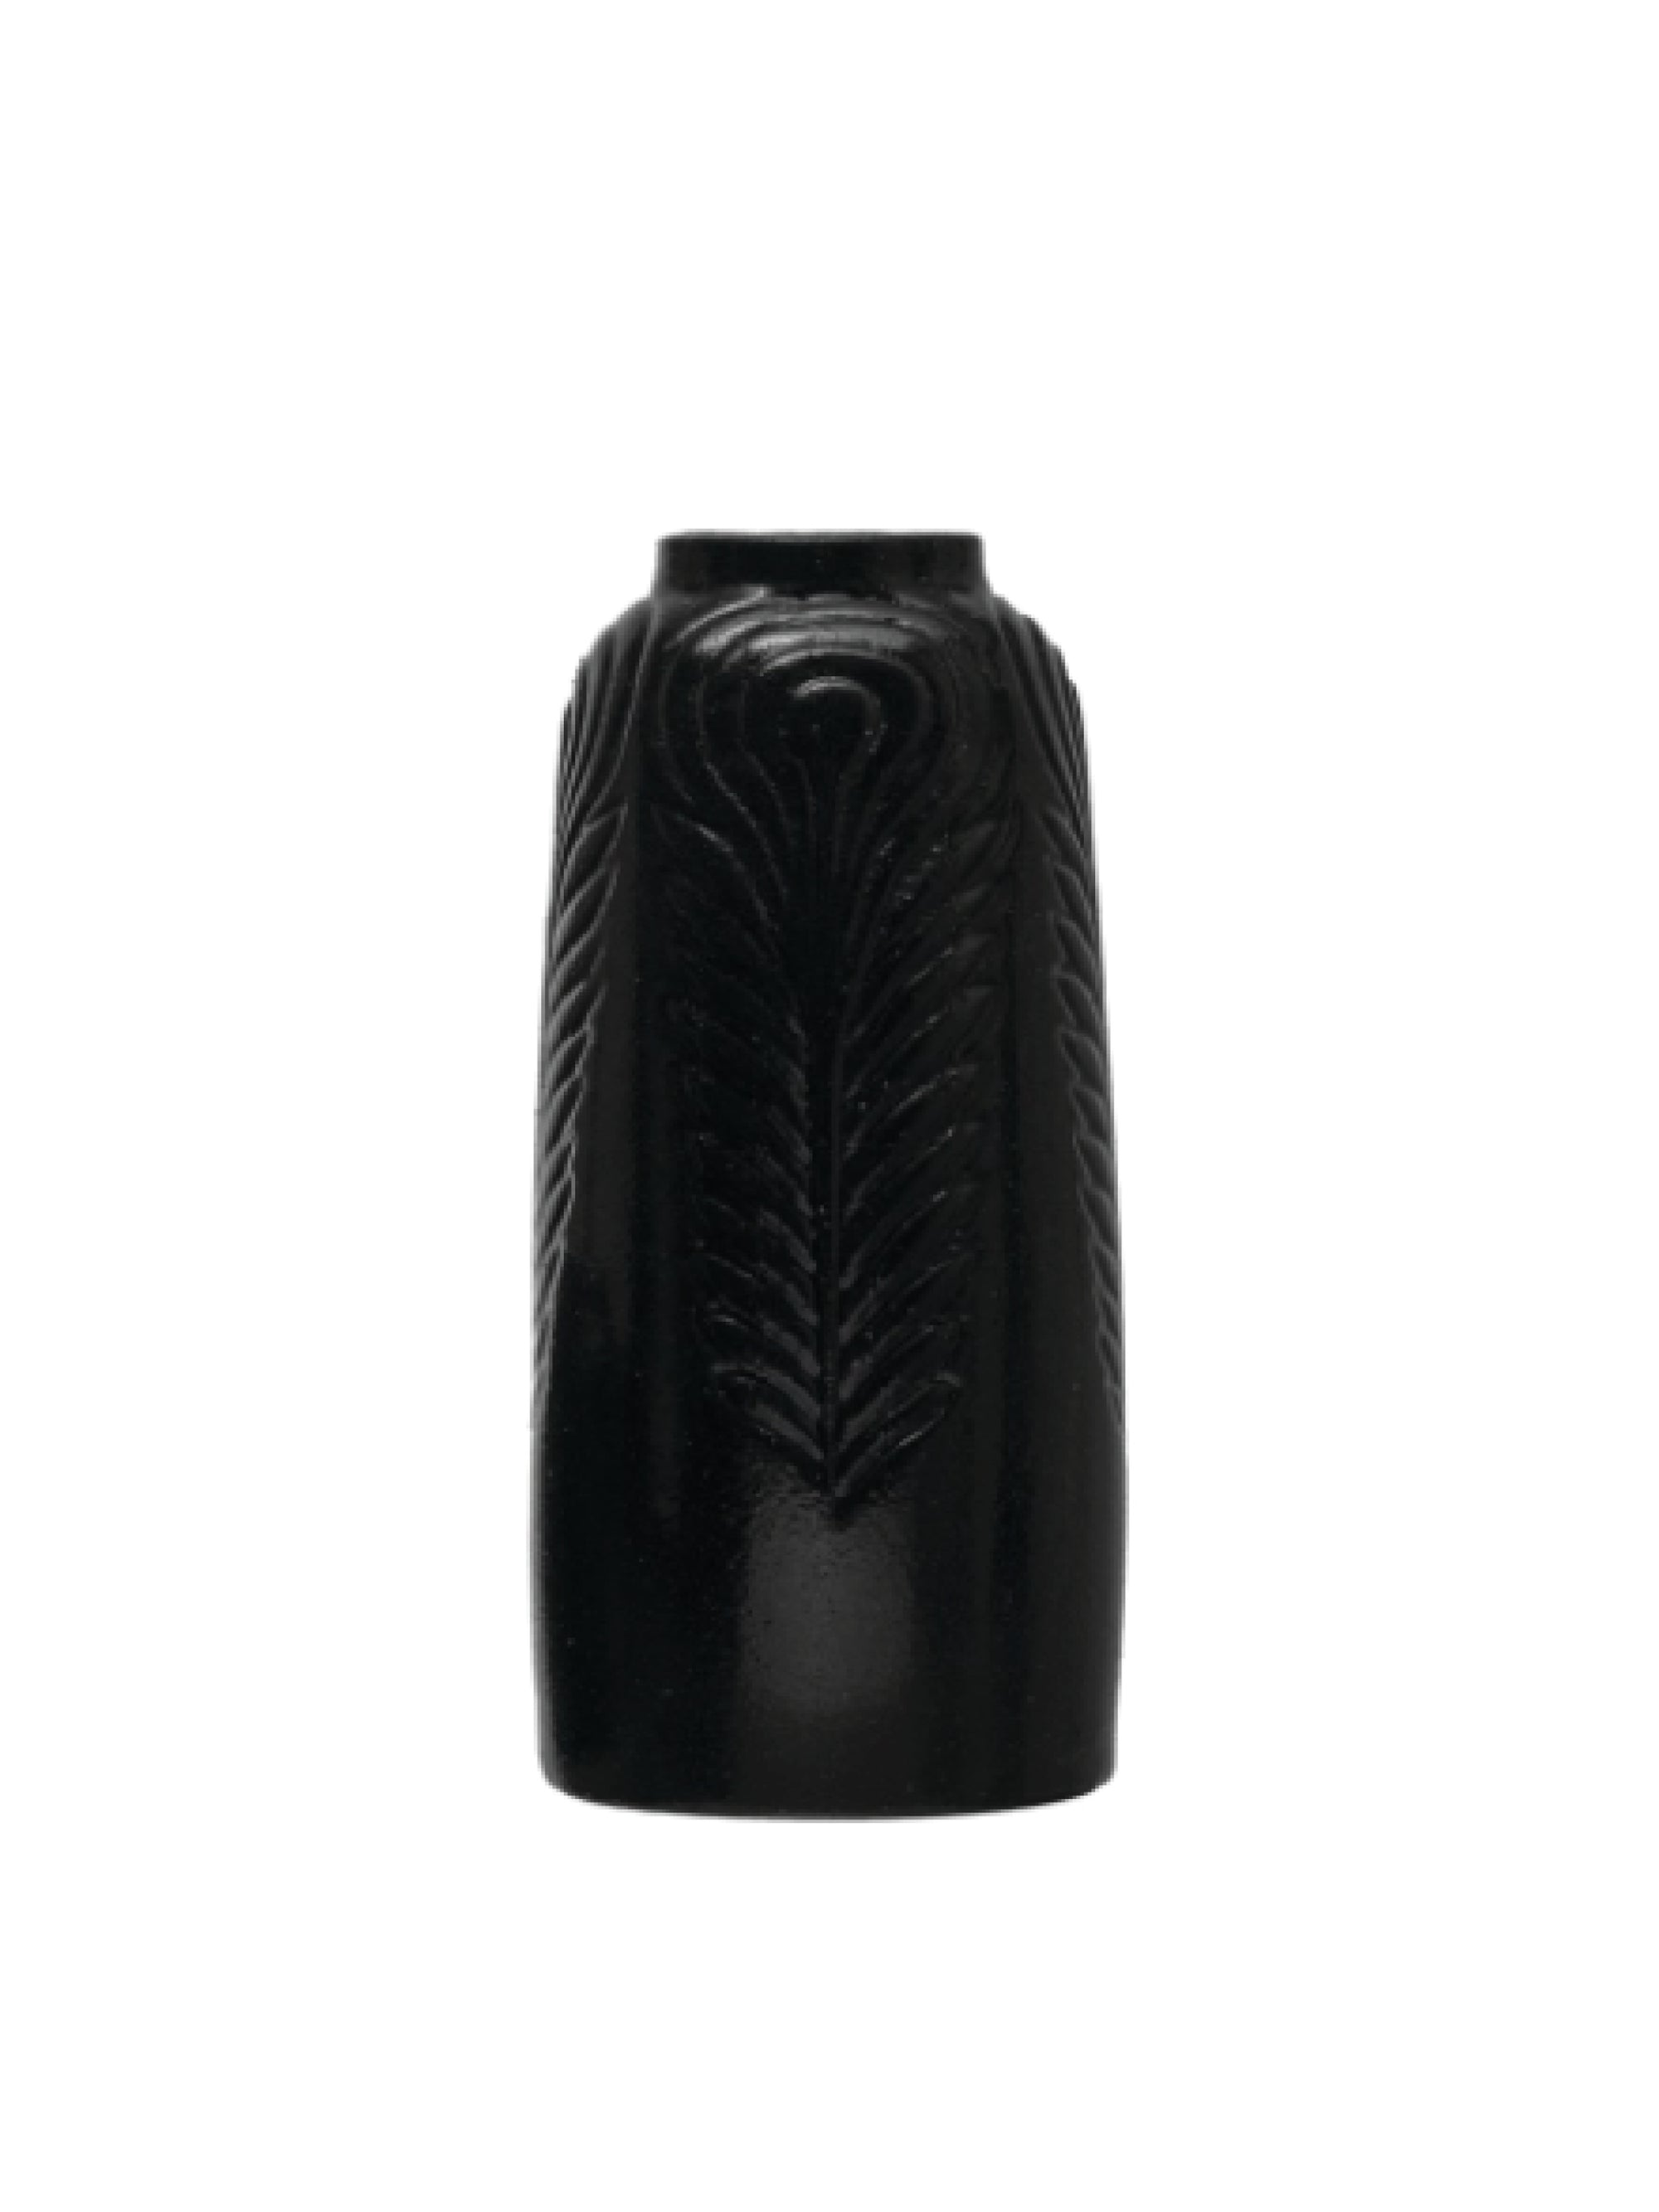 Black Embossed Stoneware Vase